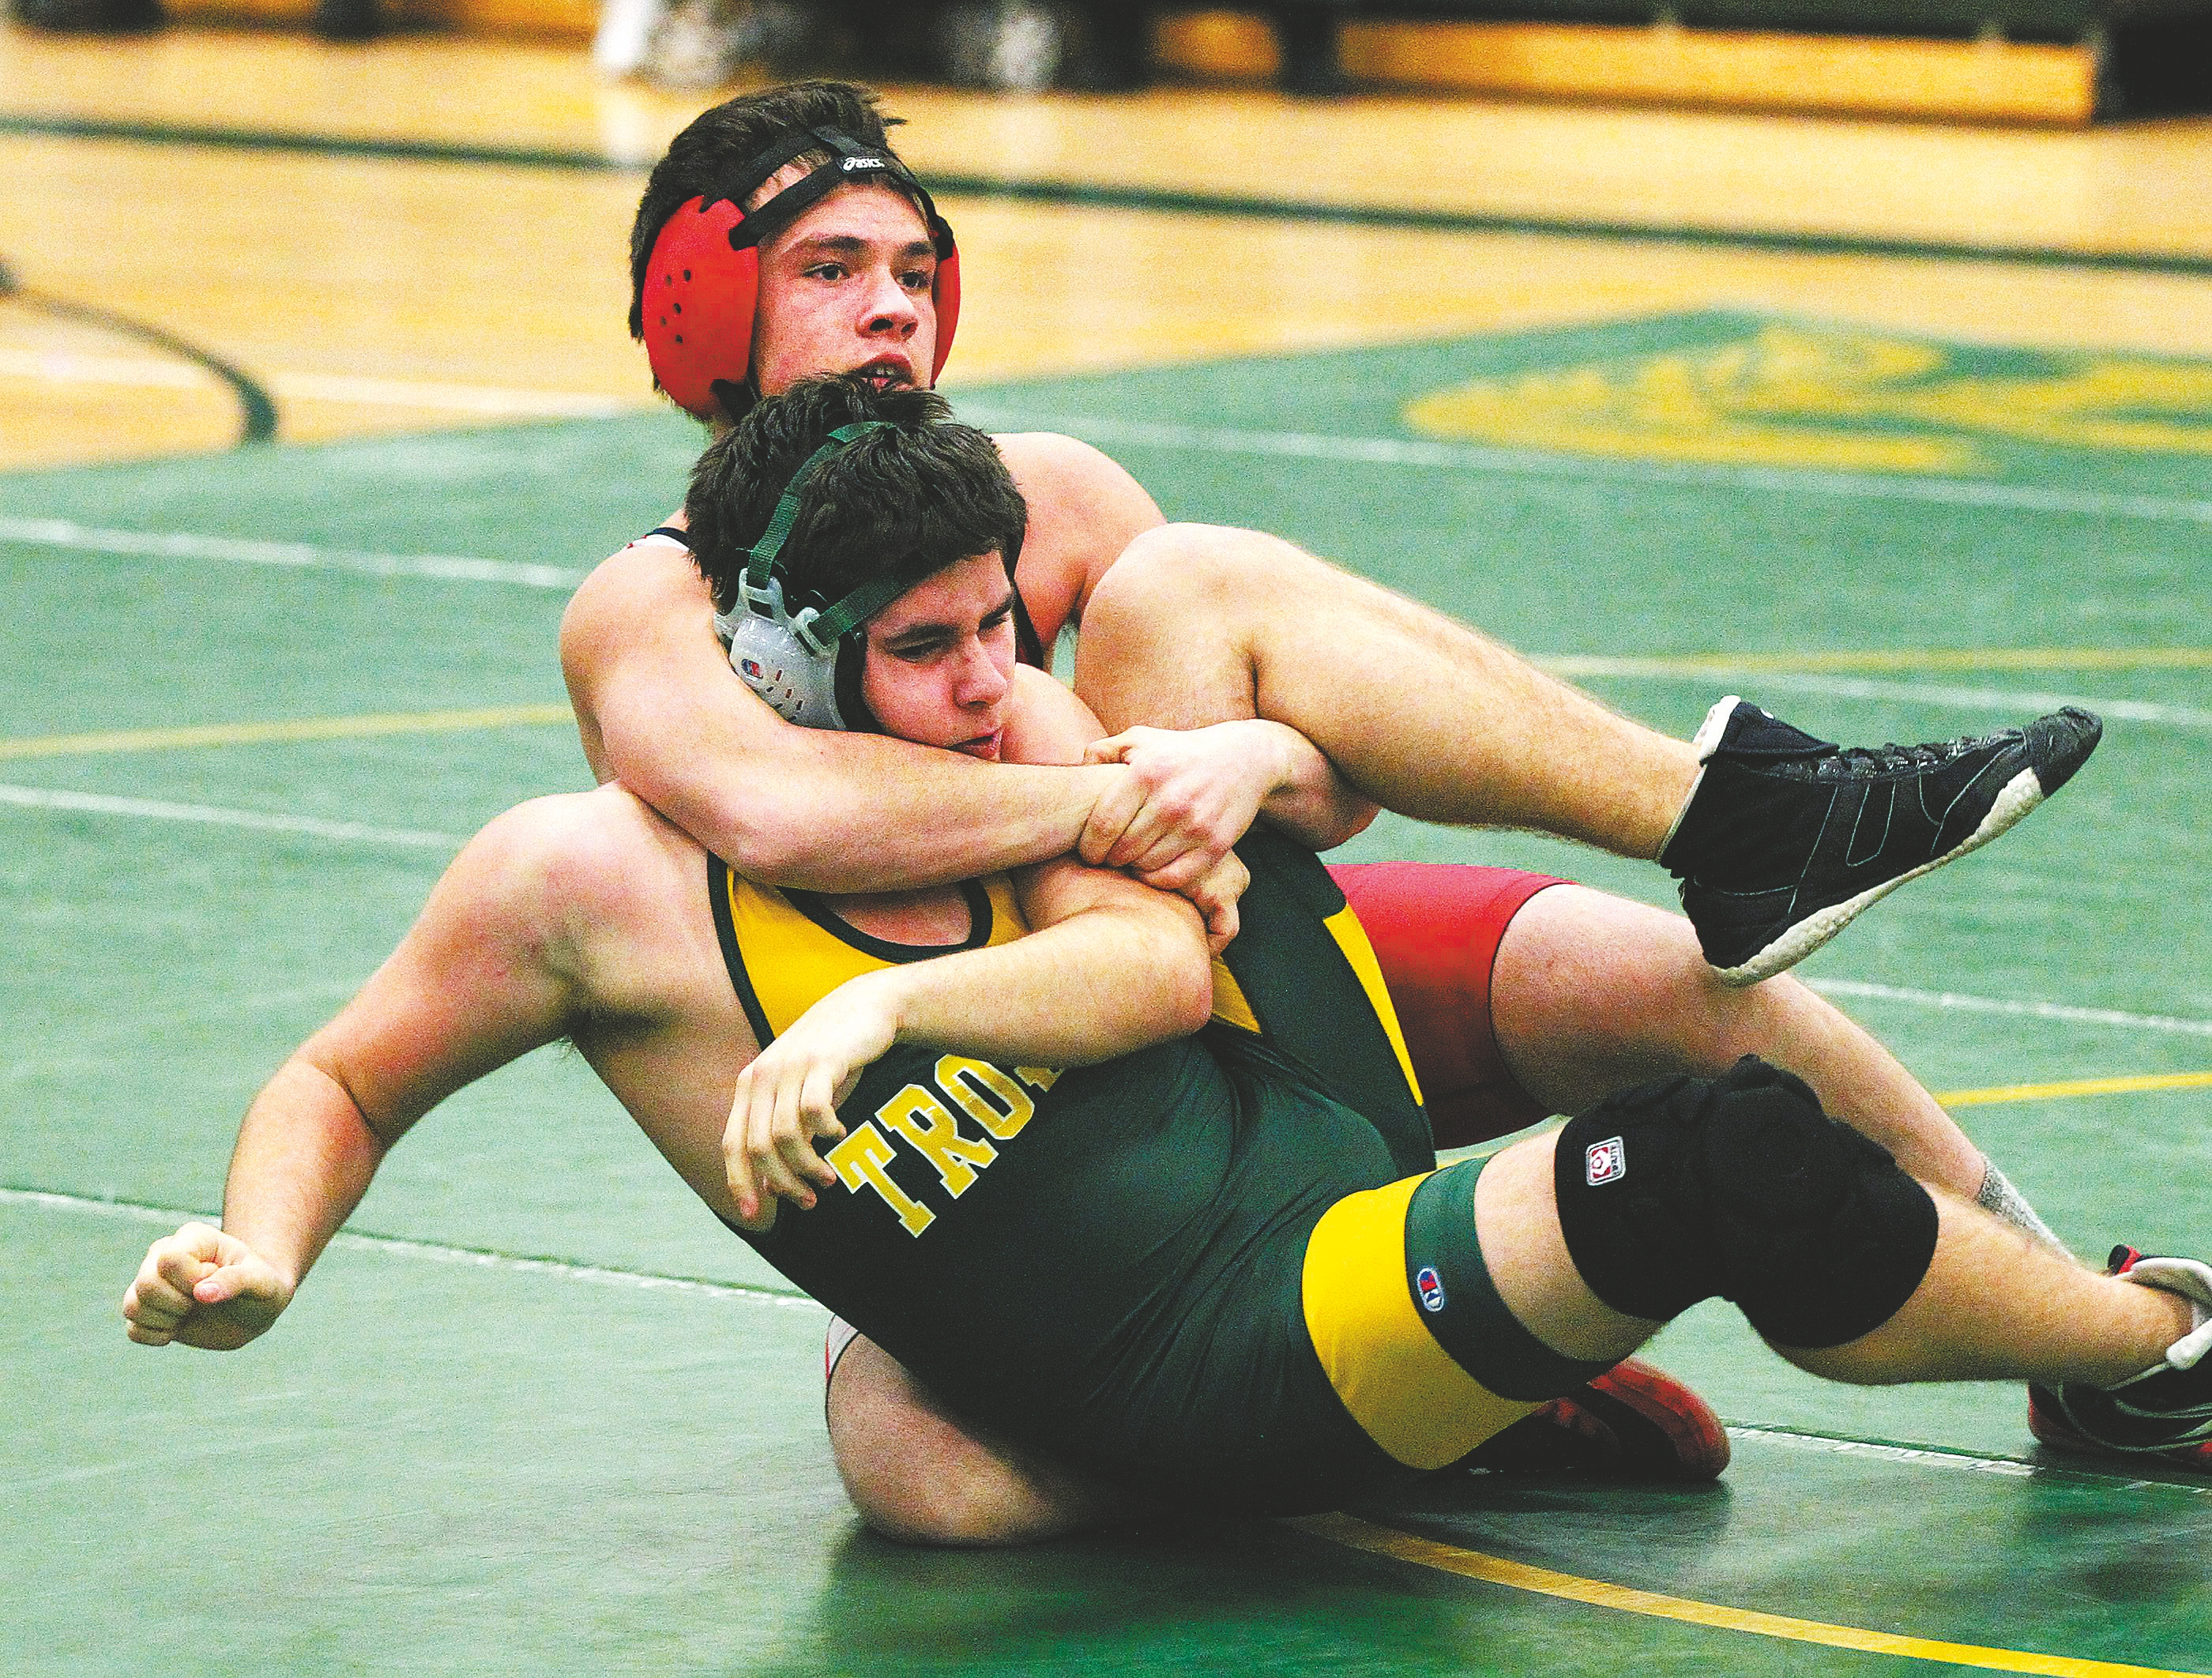 Iroquois' Jacob Seiner beat West Seneca East's Brenden Mages in the 160-pound weight class during their match won by the Chiefs, 67-15.